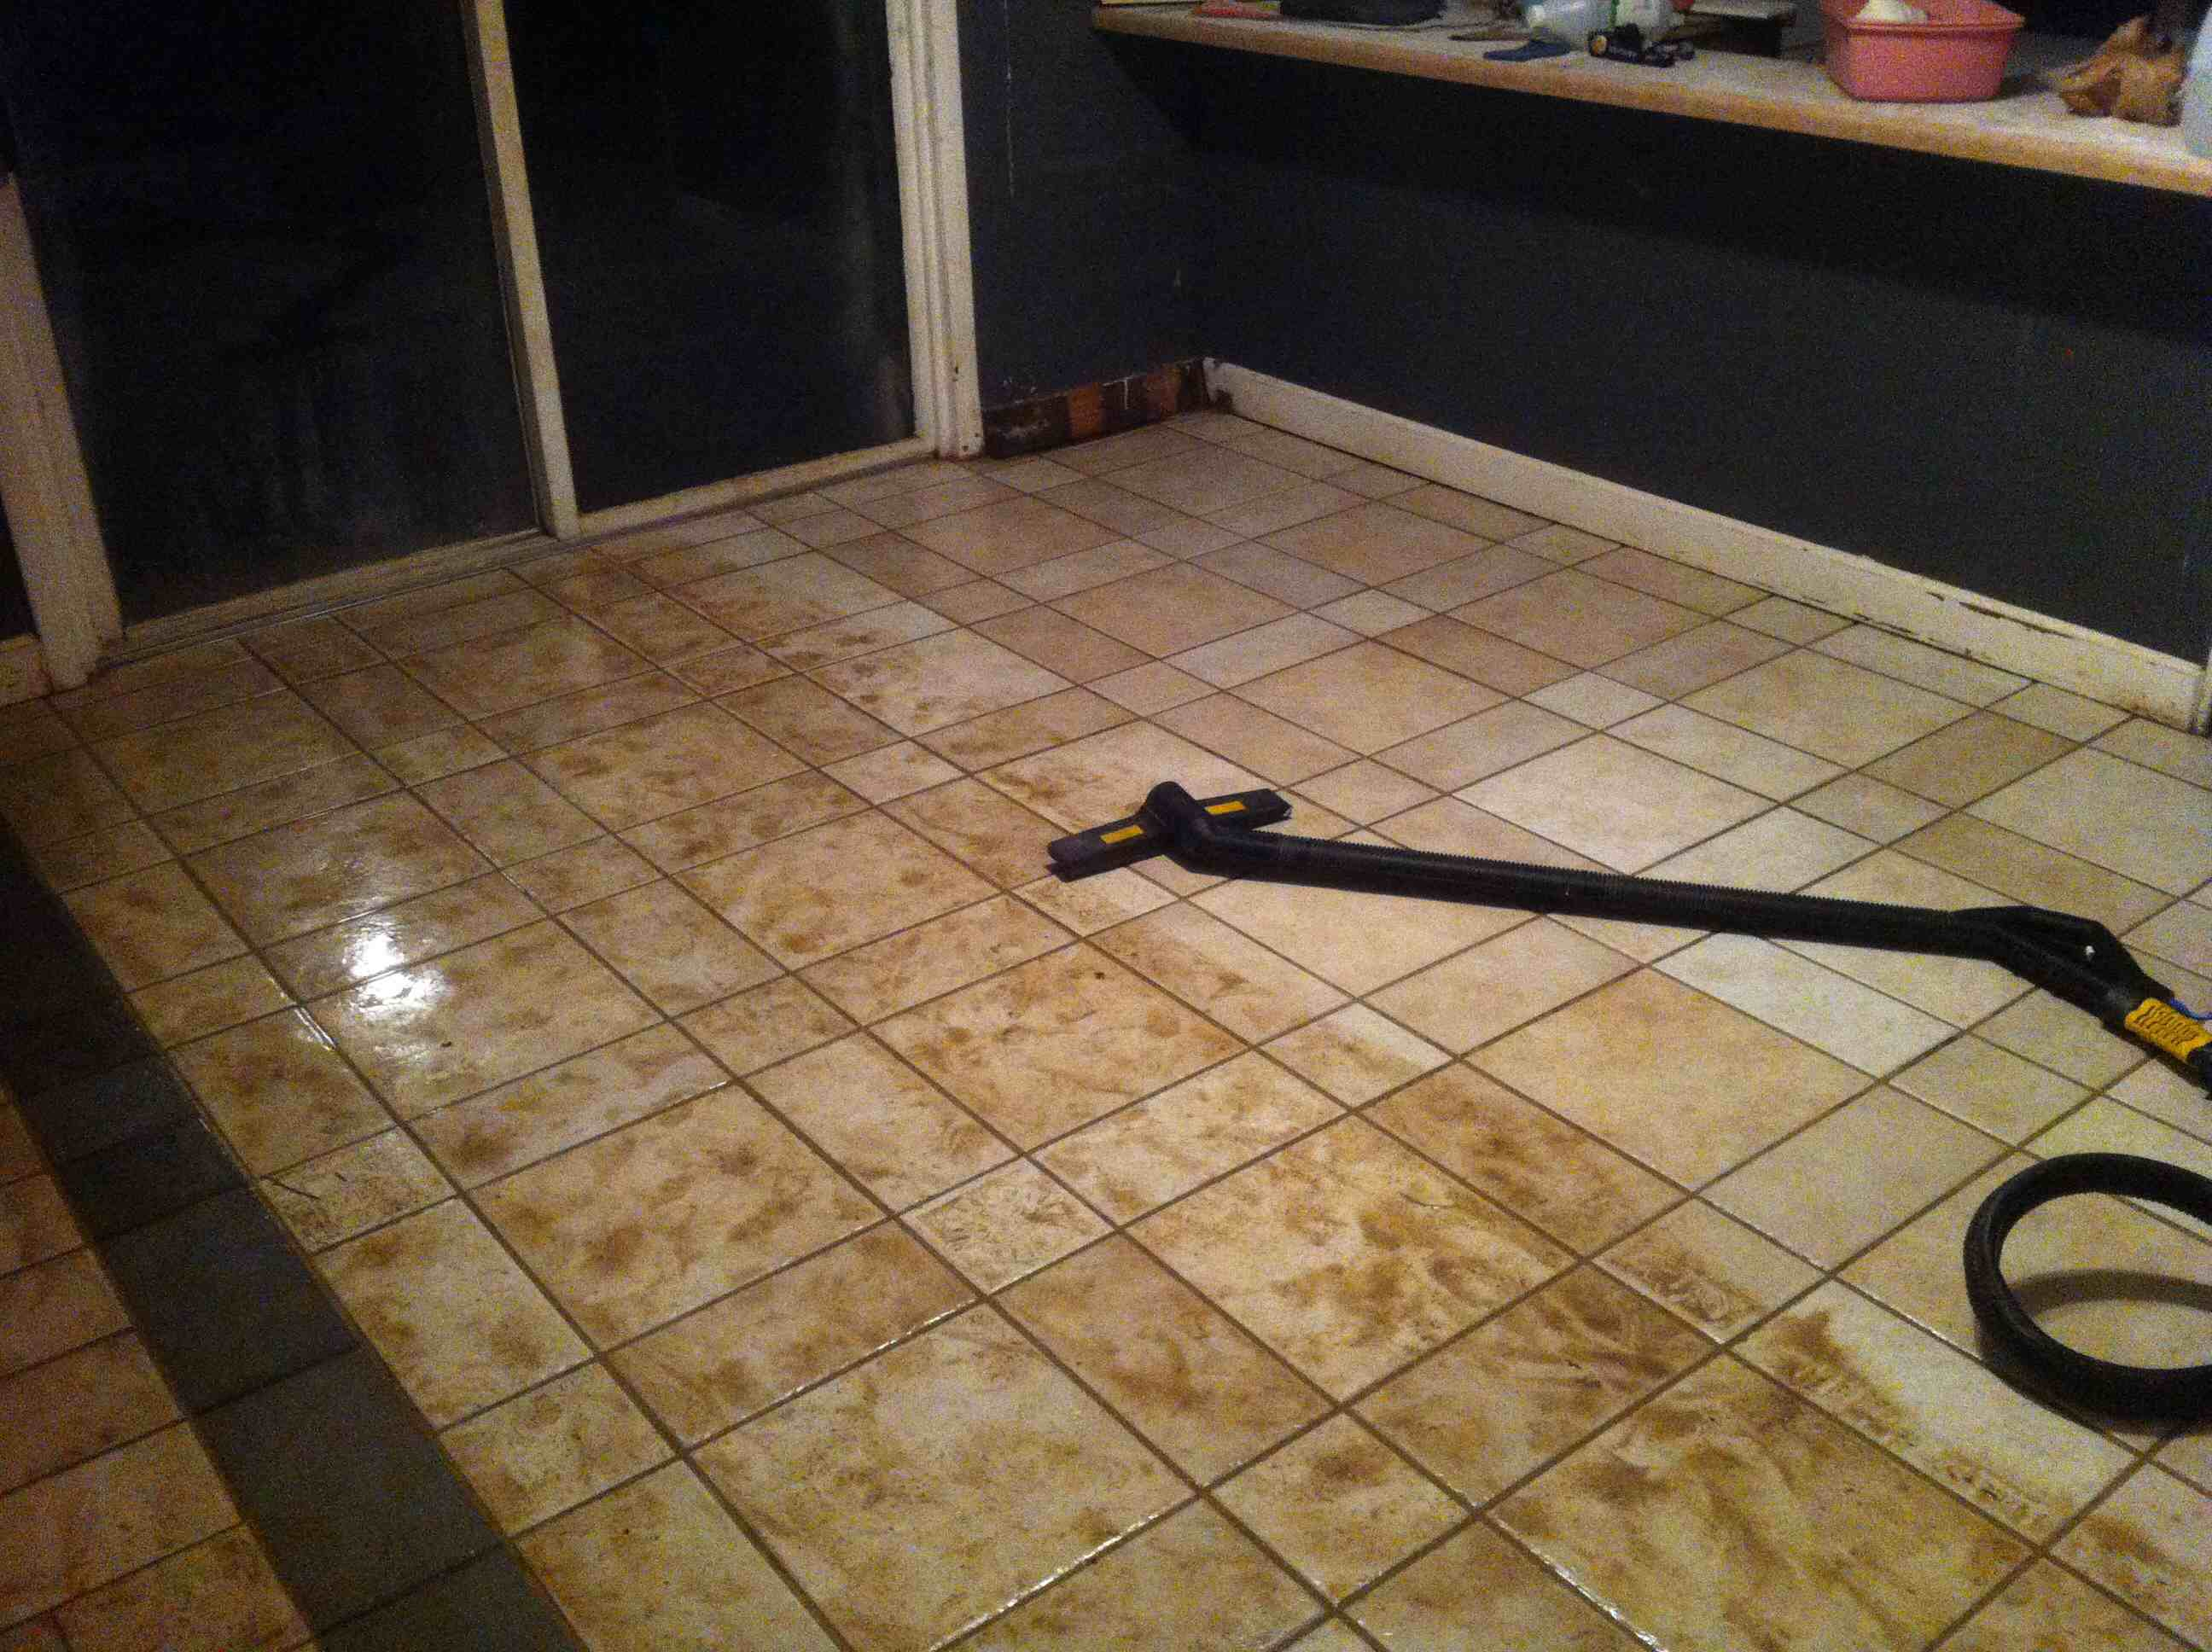 Cleaning dirty tile with superheated steam.  Wow!